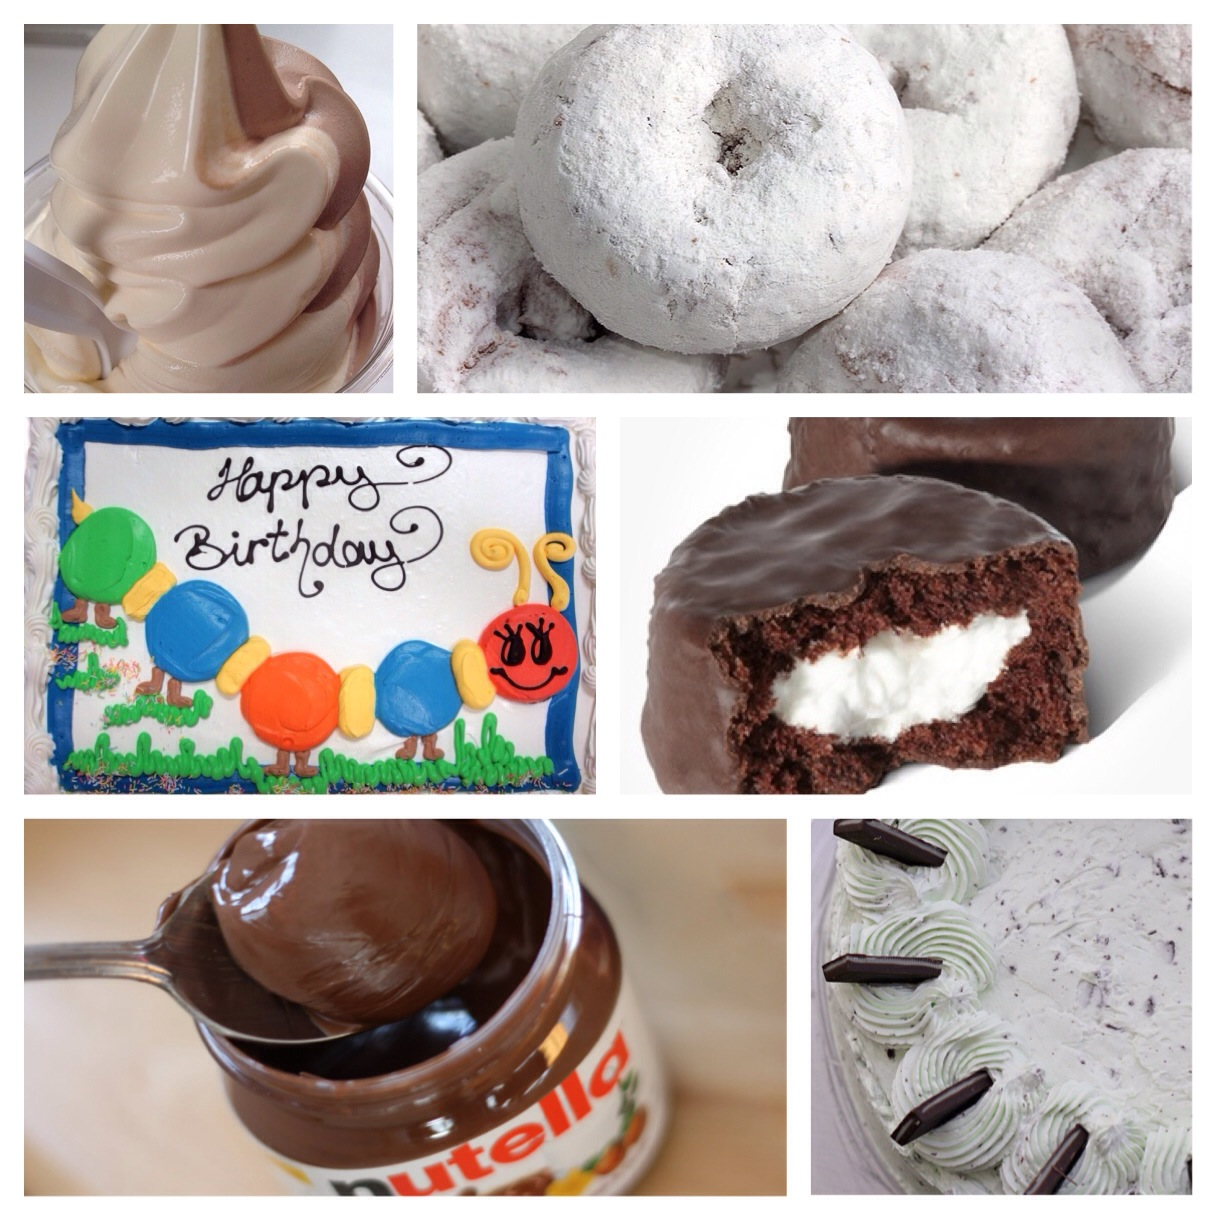 Dessert_Guilty_Pleasure_Costco_Frozen_Yogurt_Ding_Dongs_Powdered_Donette_Gems_Nutella_Costco_Vanilla_Cake_Vanilla_Frosting_Baskin_Robbins_Mint_Chocolate_Chip_Chocolate Cake_Ice_Cream_Cake_Nutrageous_Candy_Bar_Dessert_Fiend.JPG